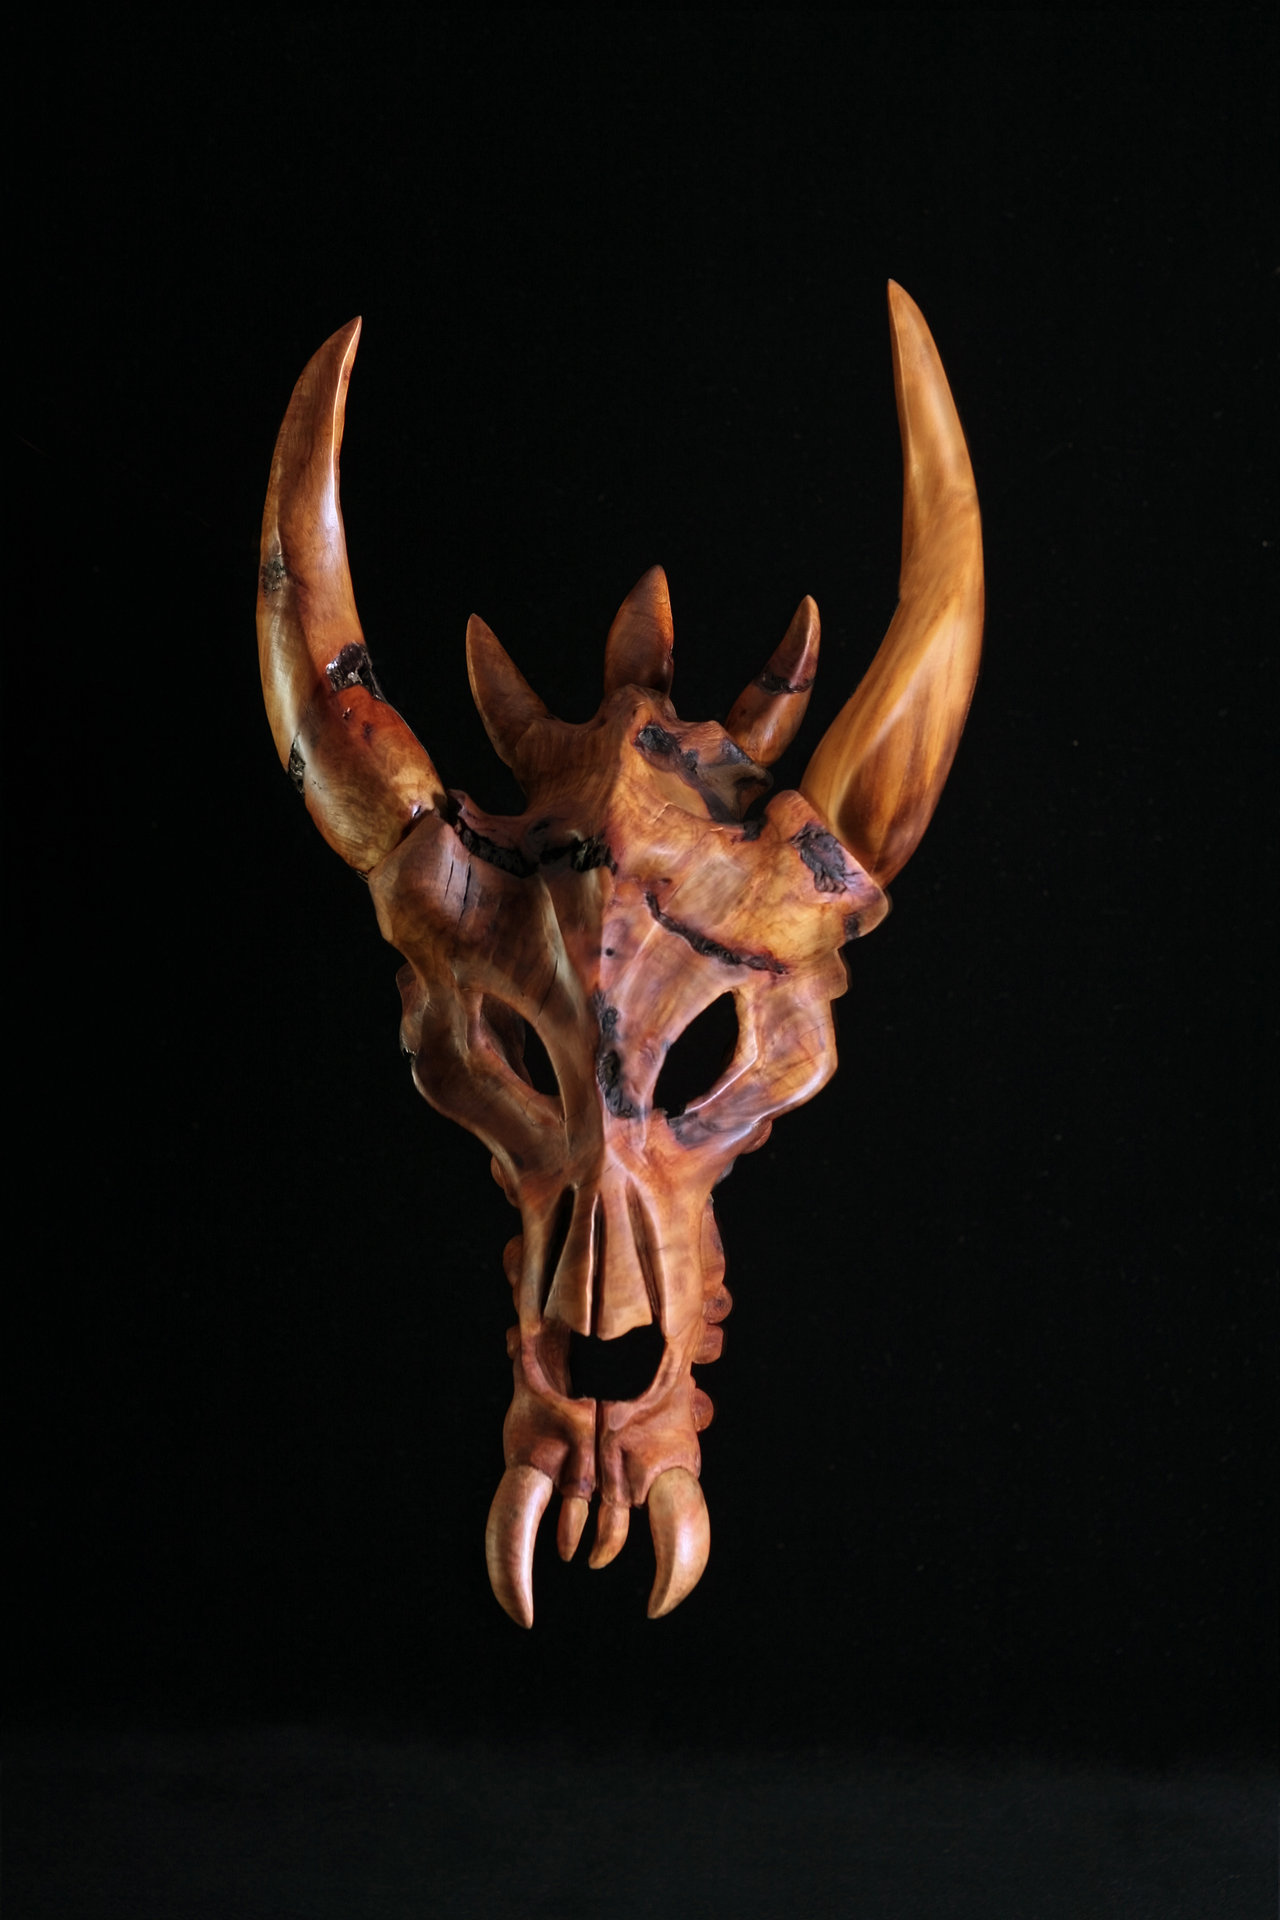 Dragon sculpture, wooden